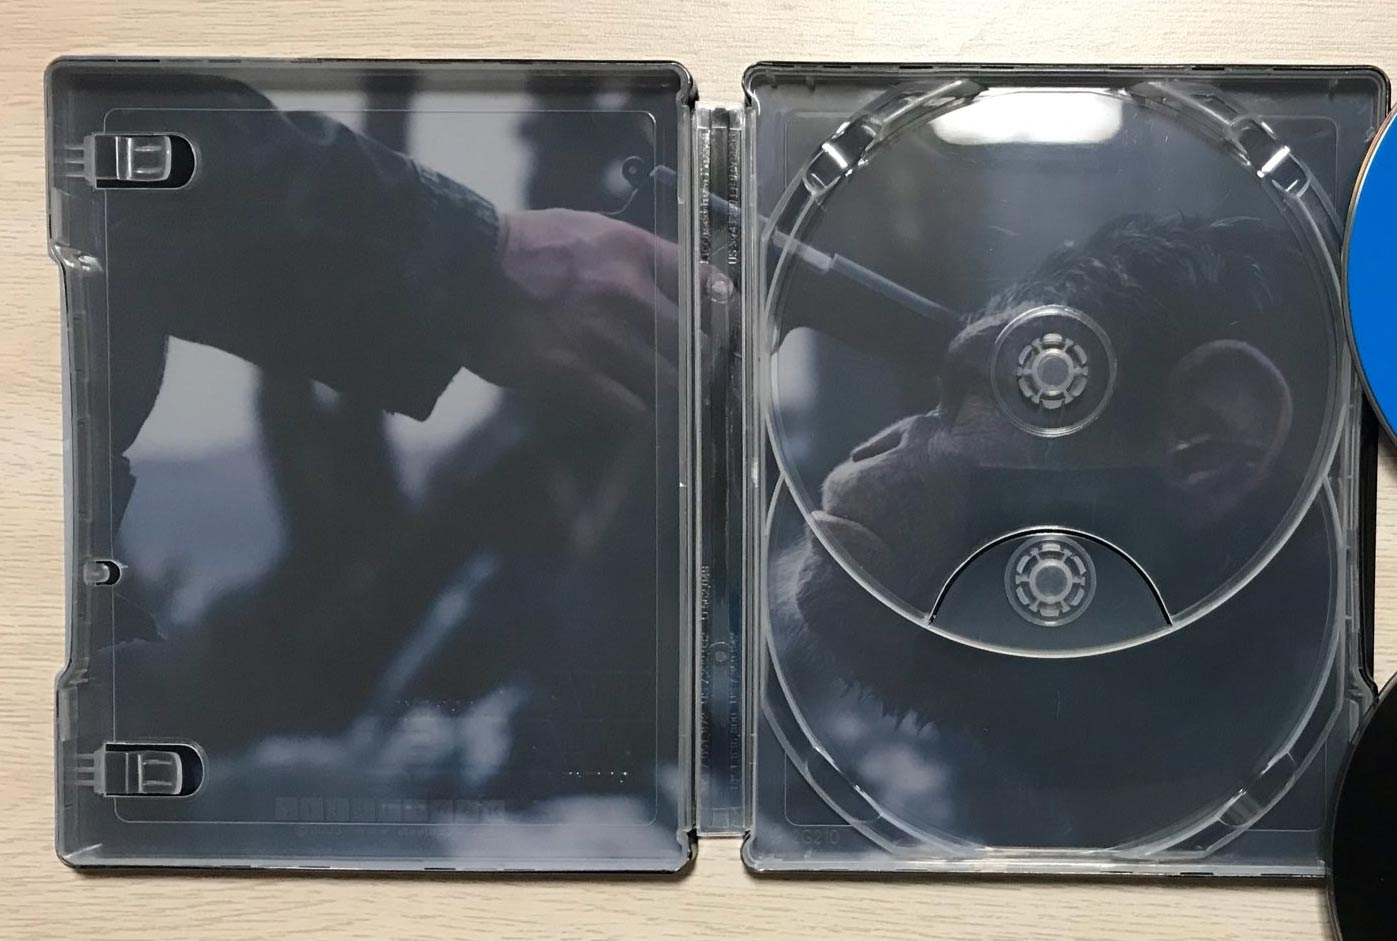 war-for-the-planet-of-the-apes-steelbook-manta-lab-2-jpg.985641